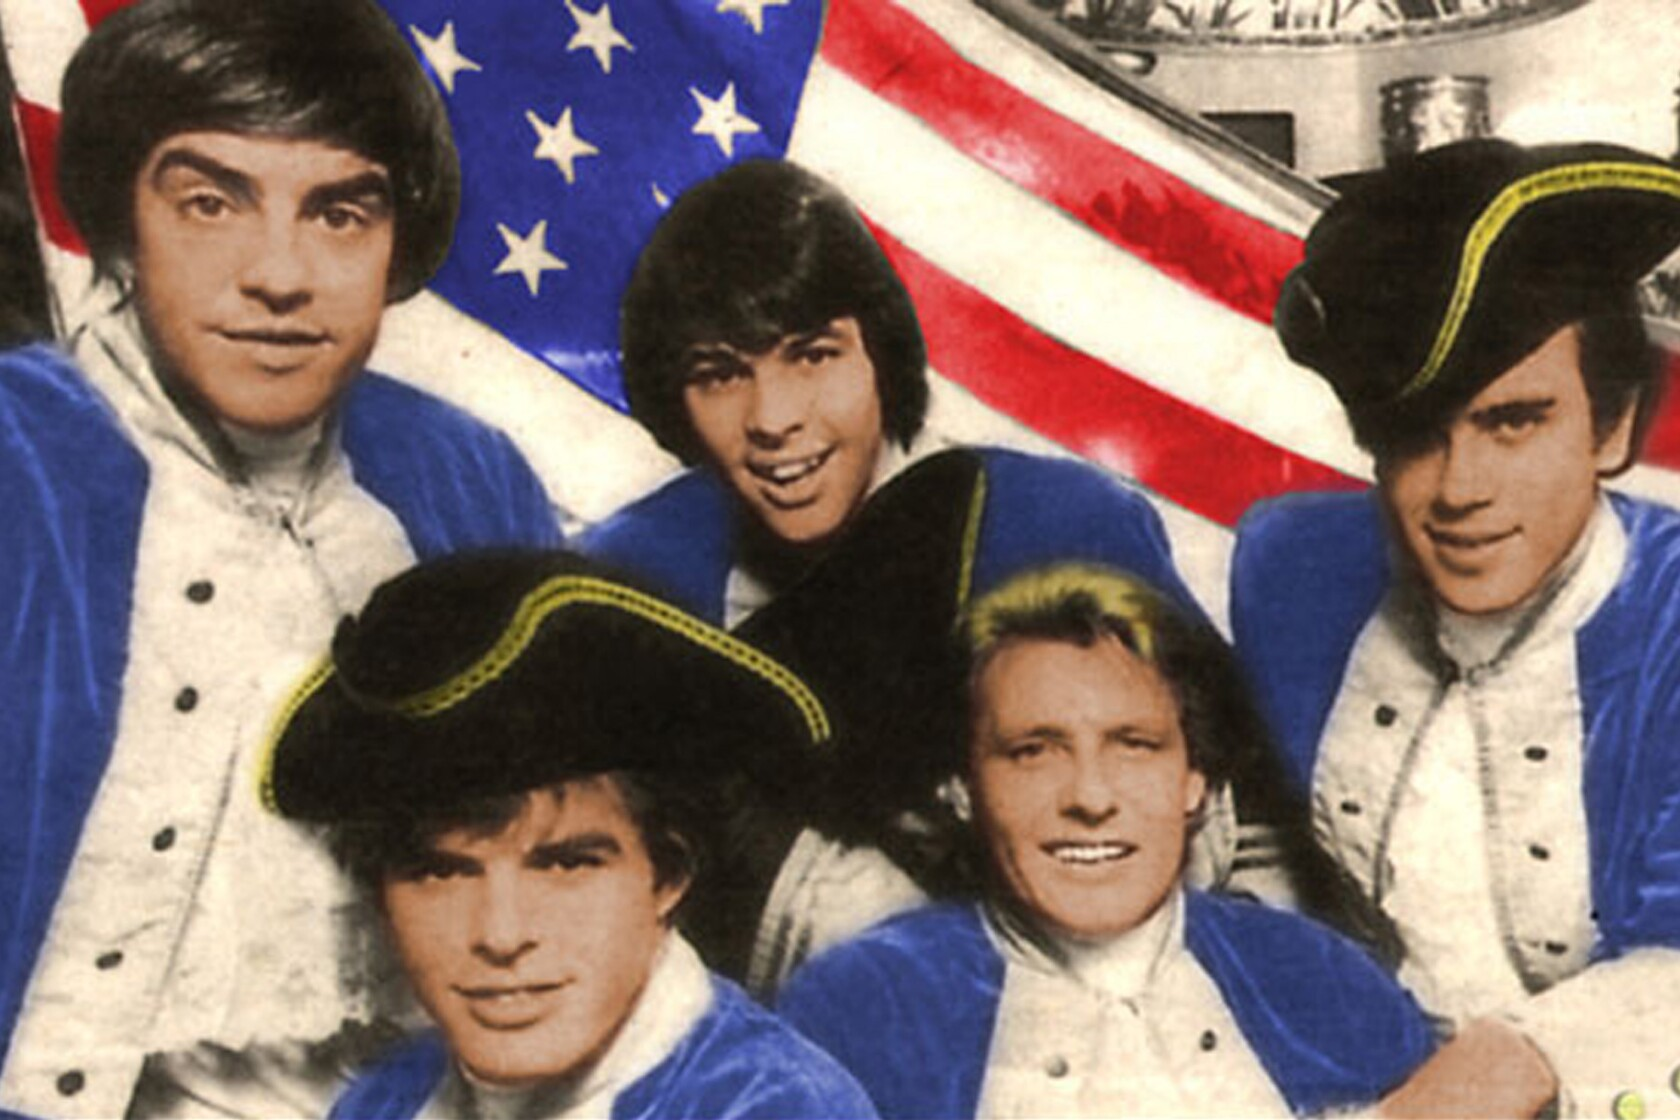 Founder of Paul Revere and the Raiders dies - Los Angeles Times